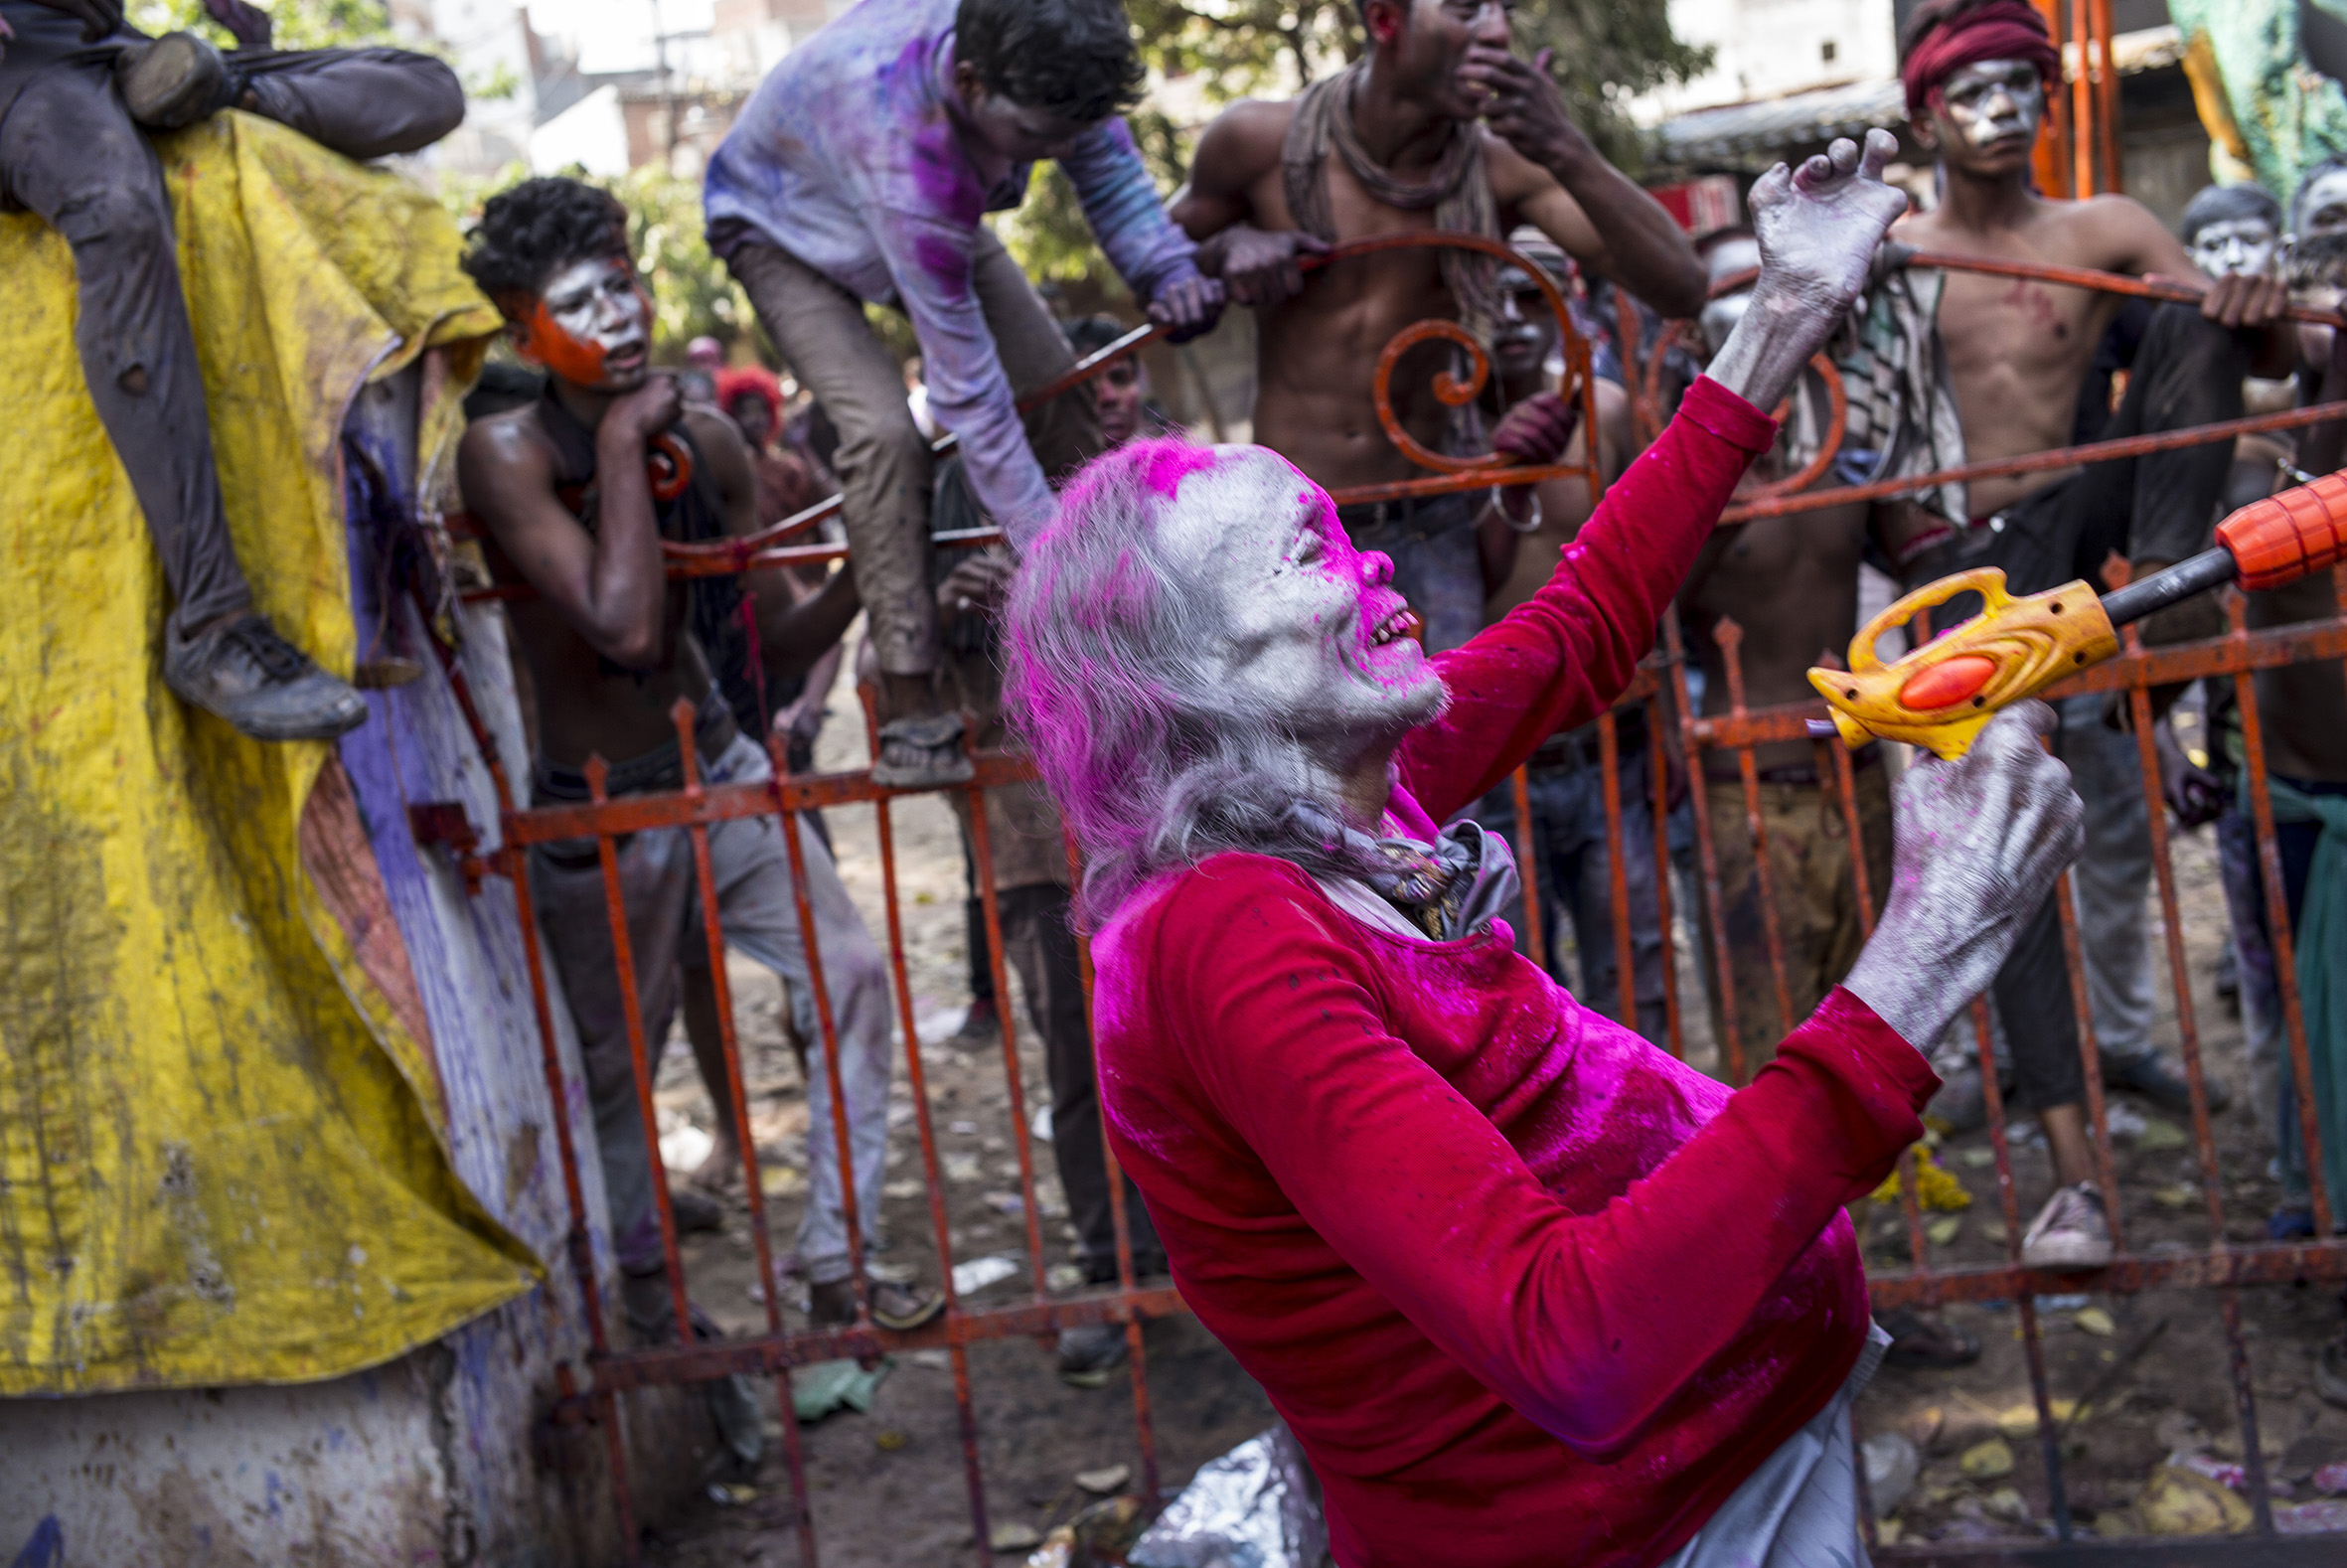 """Holi"" Festival celebrations in Varanasi, India                                       © Russell Shakespeare 2018"